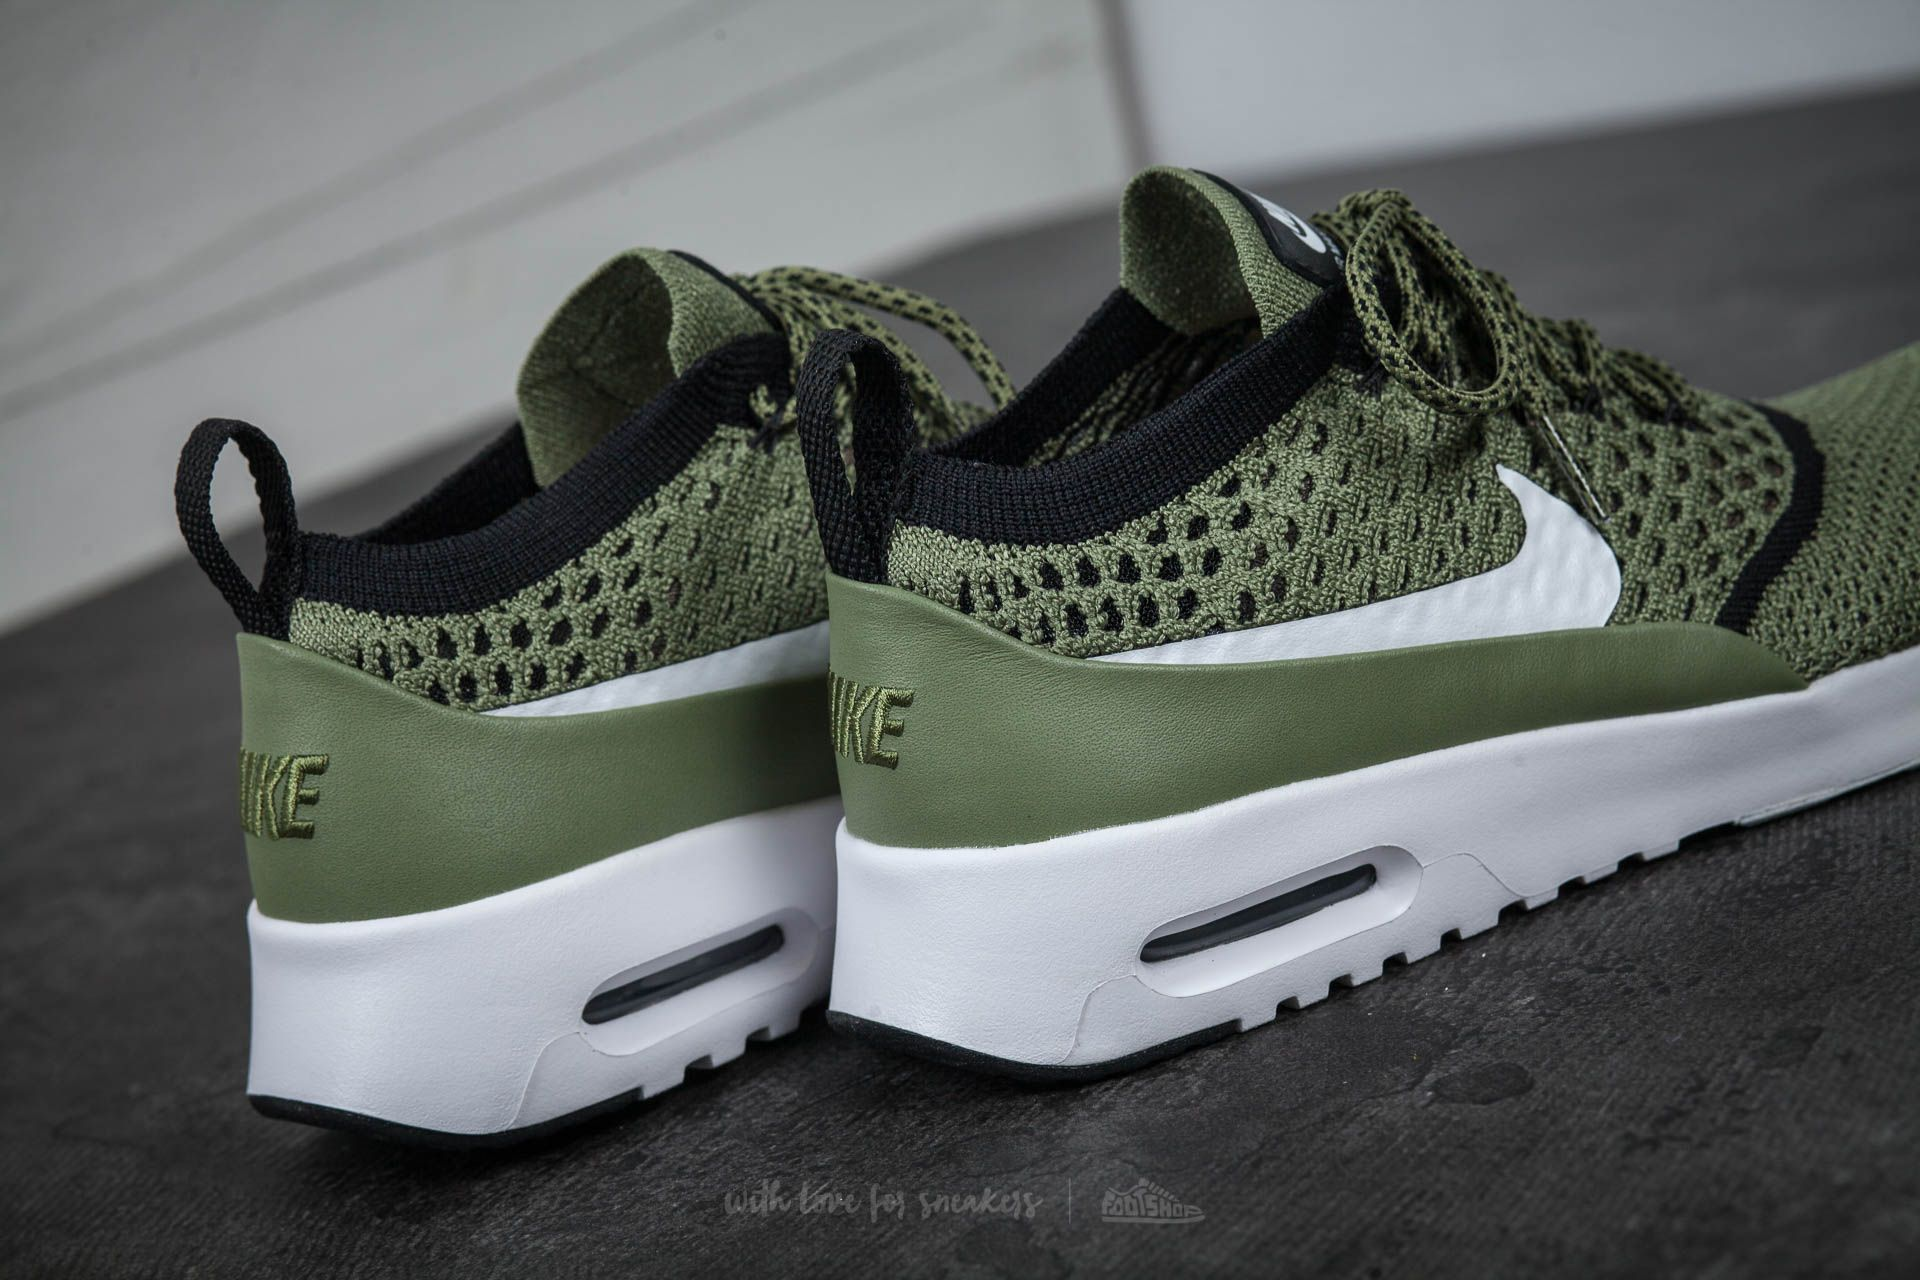 Nike Wmns Air Max Thea Ultra Flyknit Palm Green White Black